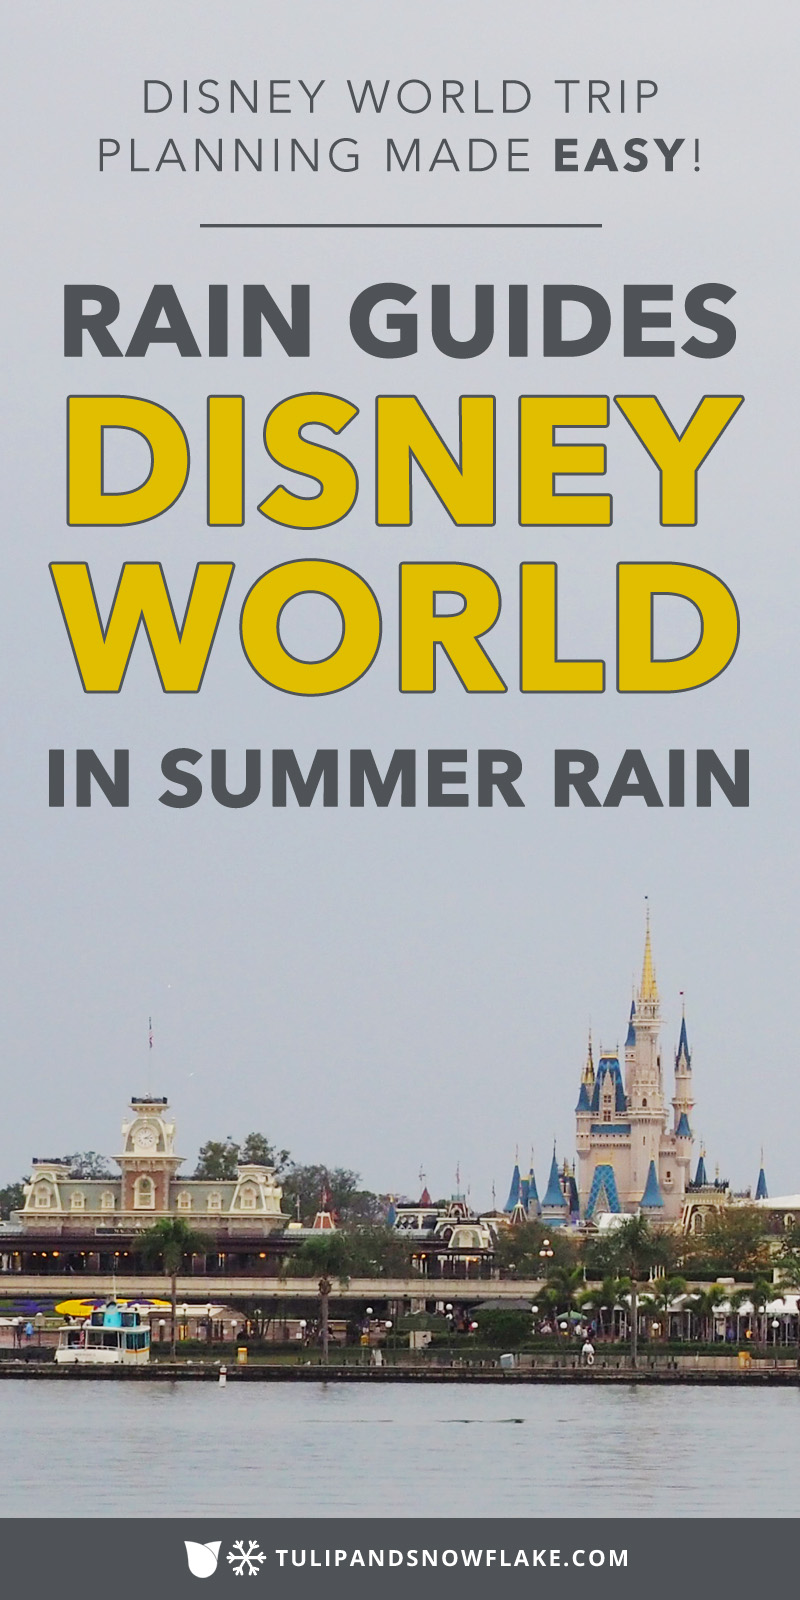 Disney World in summer rain